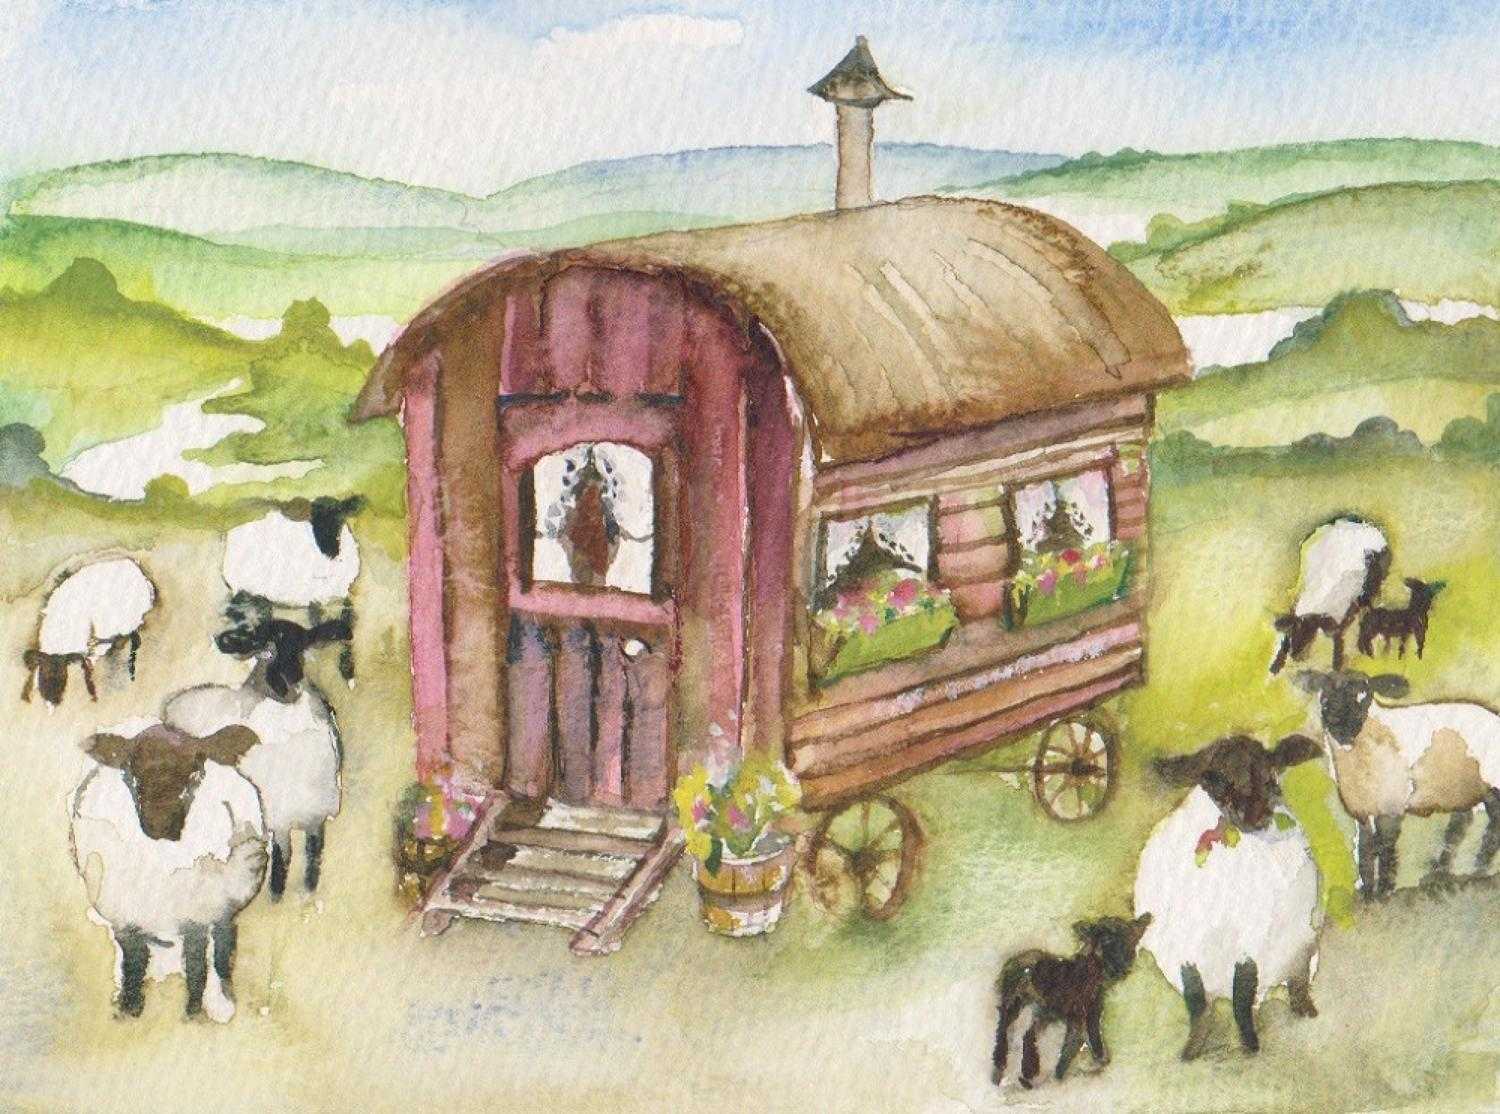 Shepherdess's hut